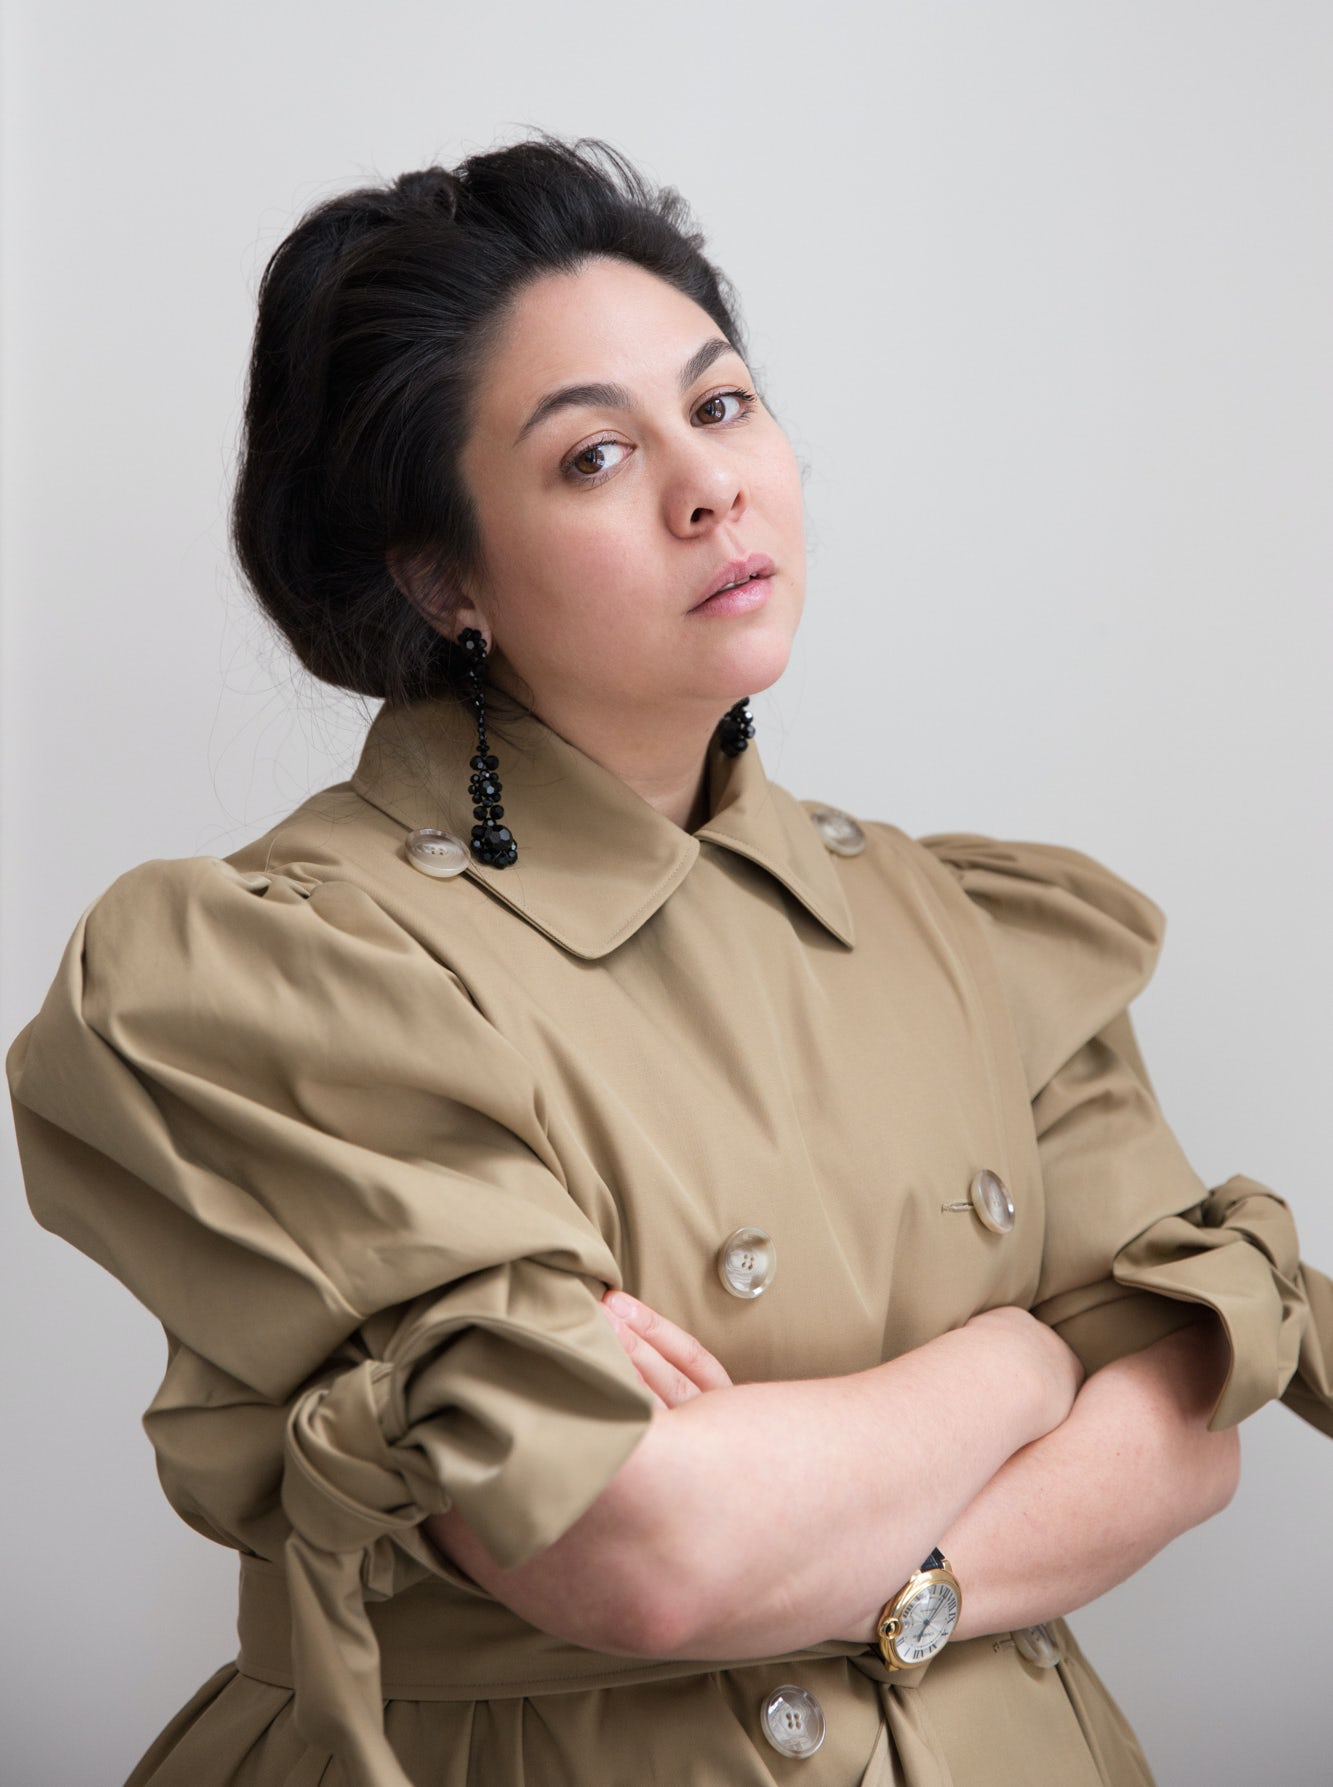 The designer Simone Rocha. | Source: Courtesy